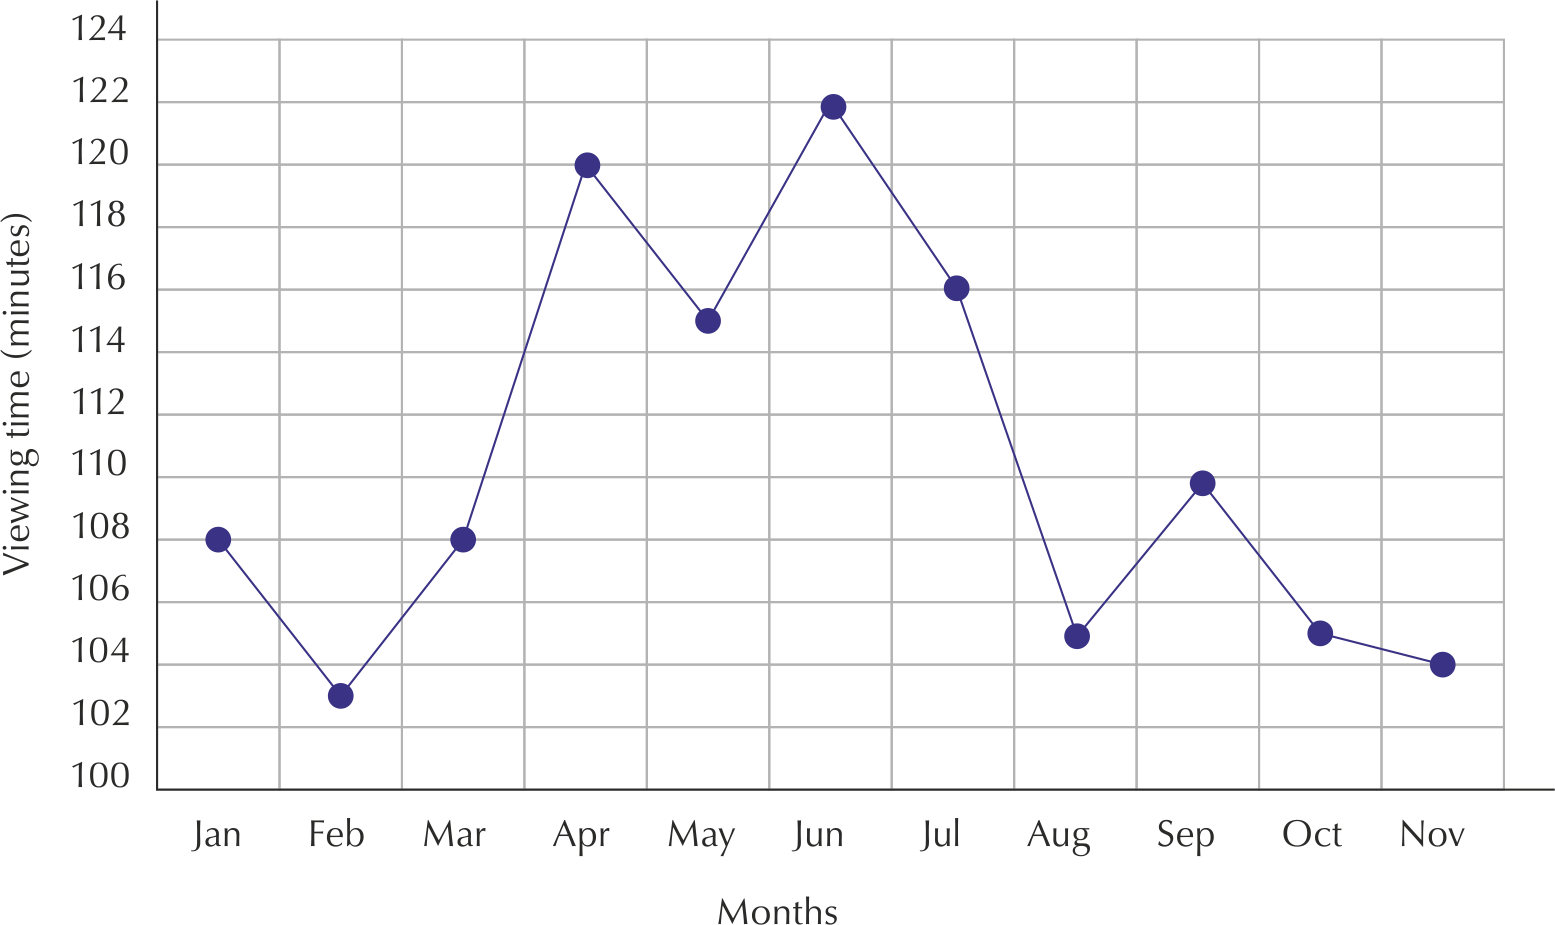 hight resolution of you can see that jabu s viewing time increases in april and again in june and slightly in september perhaps due to school holidays